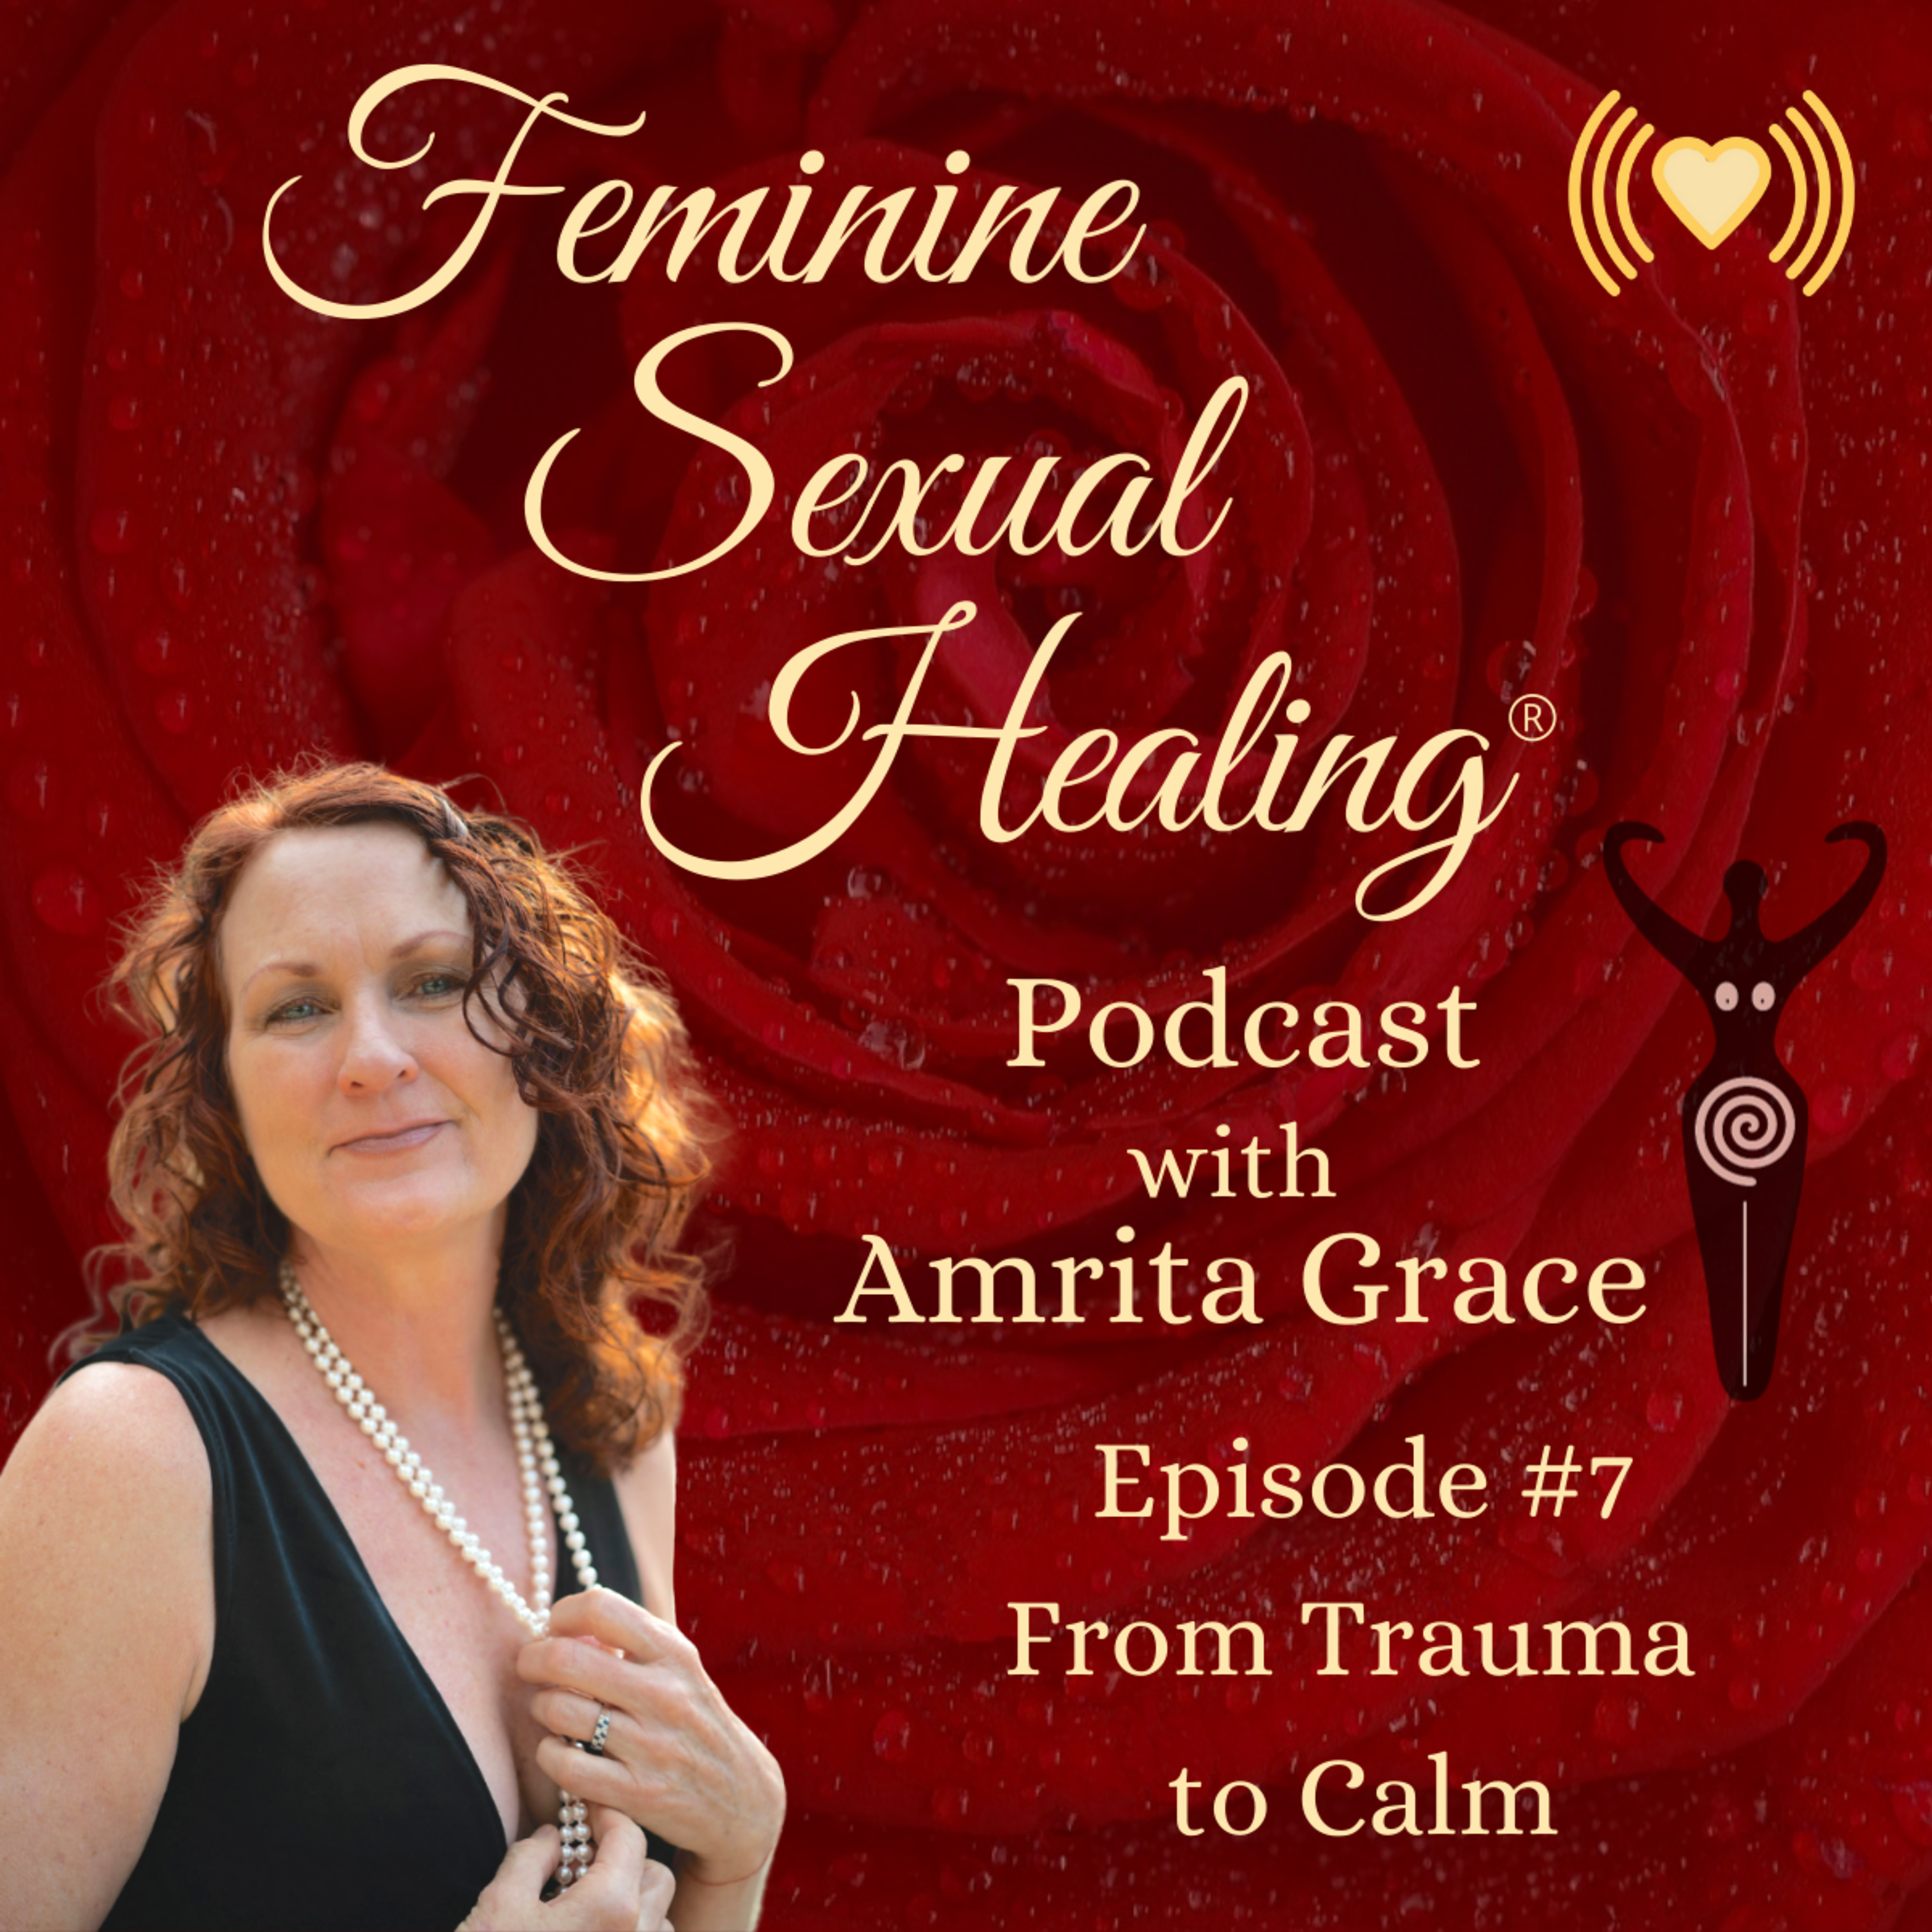 Episode #7 - From Trama to Calm